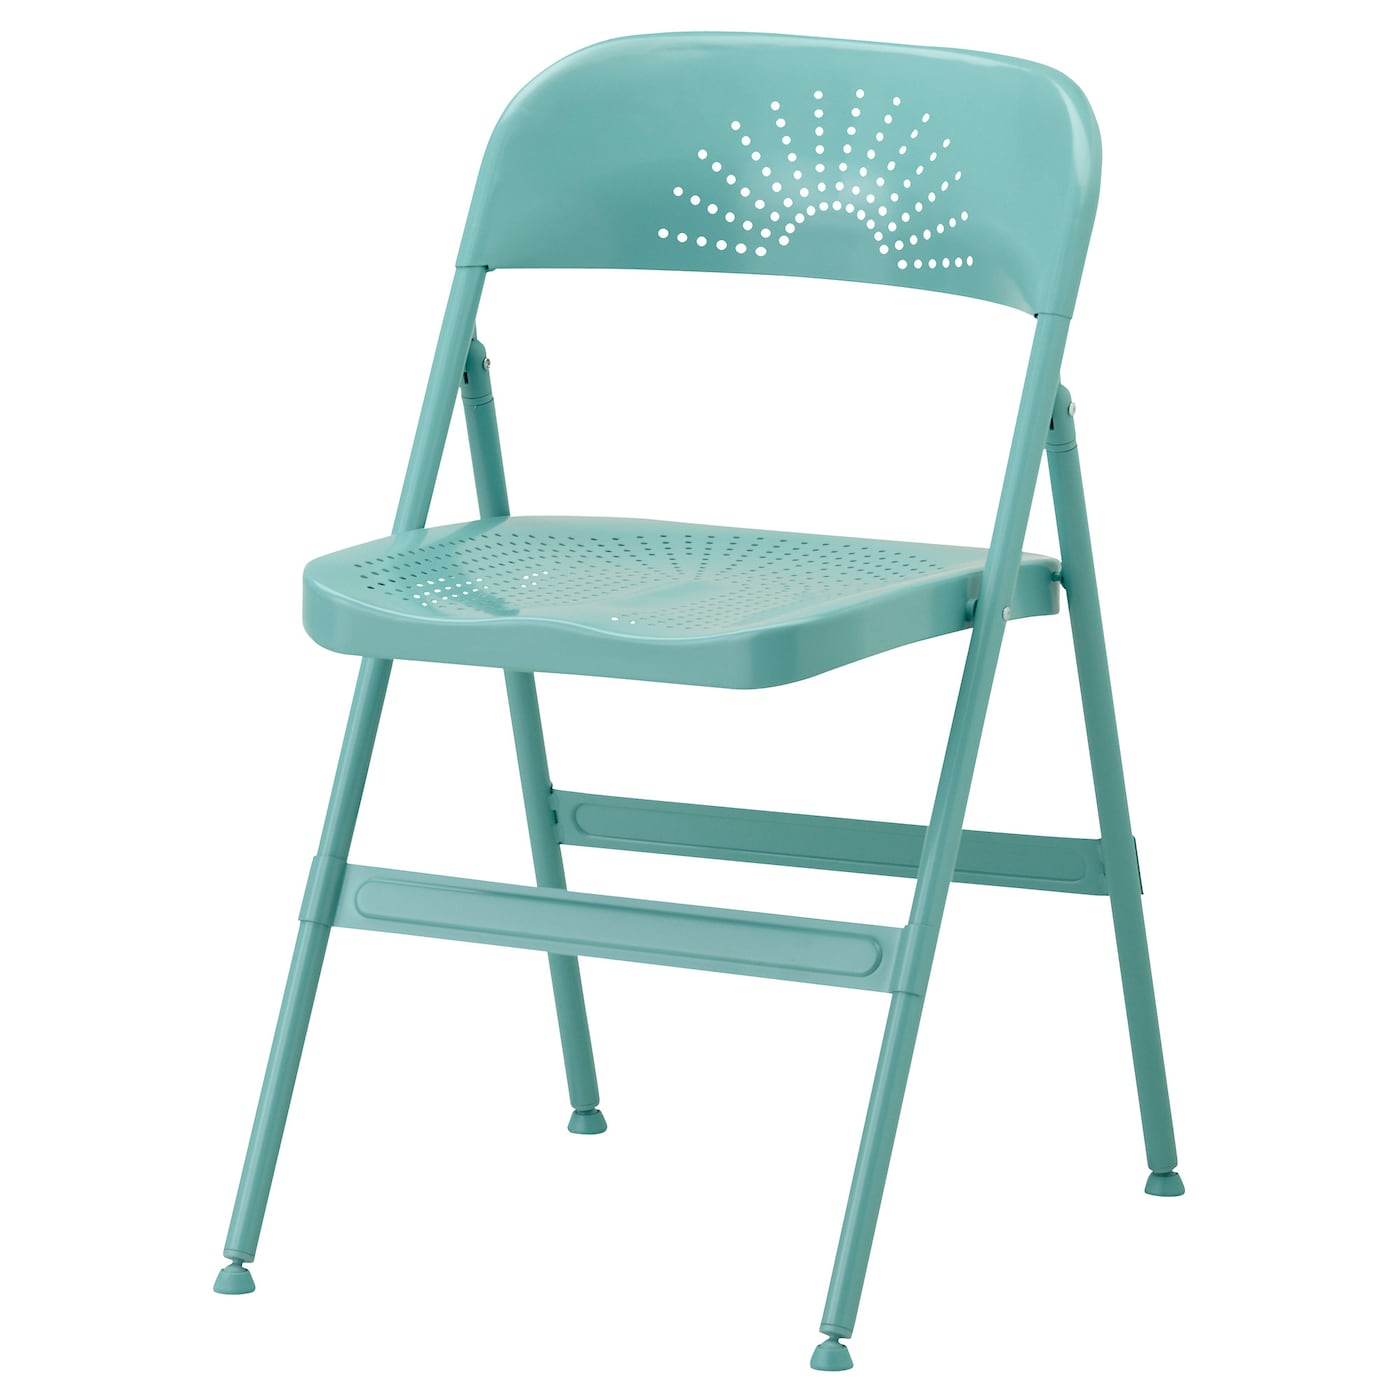 folding chairs - stackable chairs - ikea